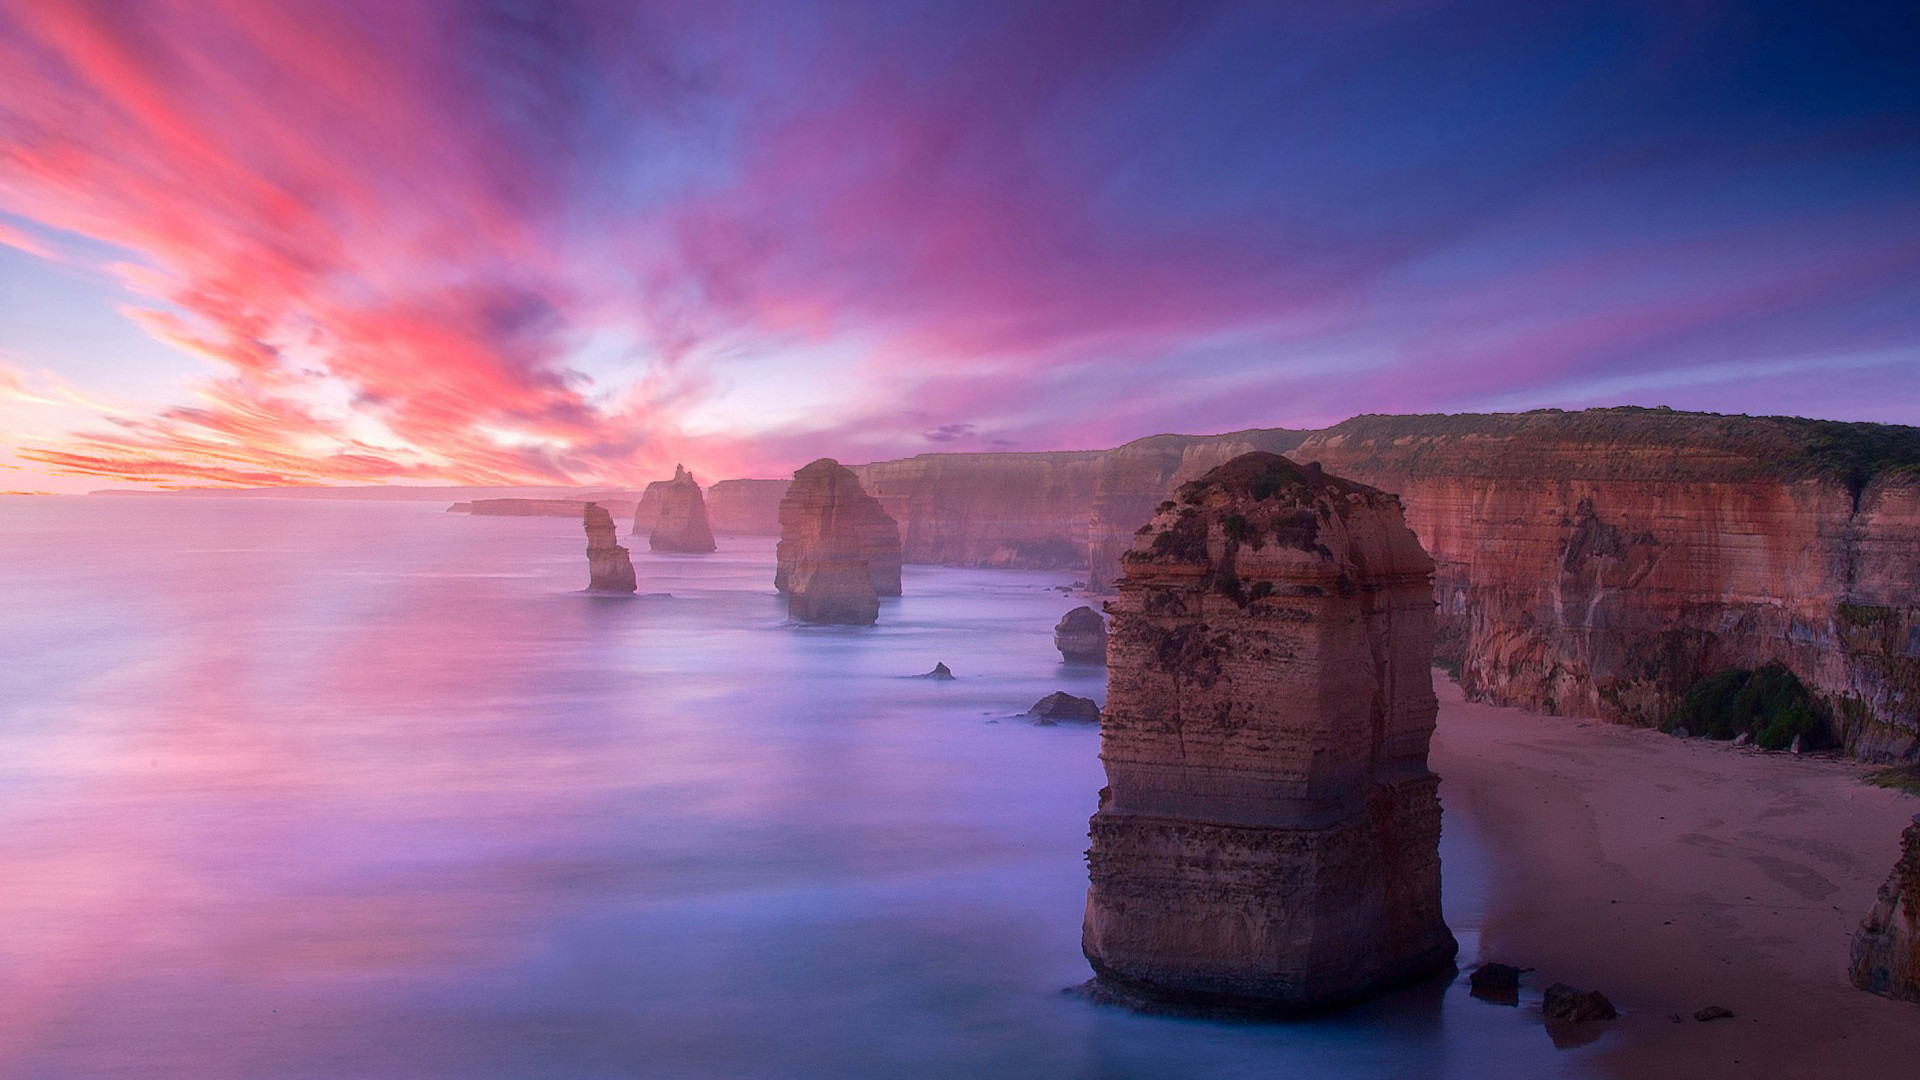 … calm wallpaper hd 35840 px hdwallsource com; free peaceful  wallpapers free long wallpapers …